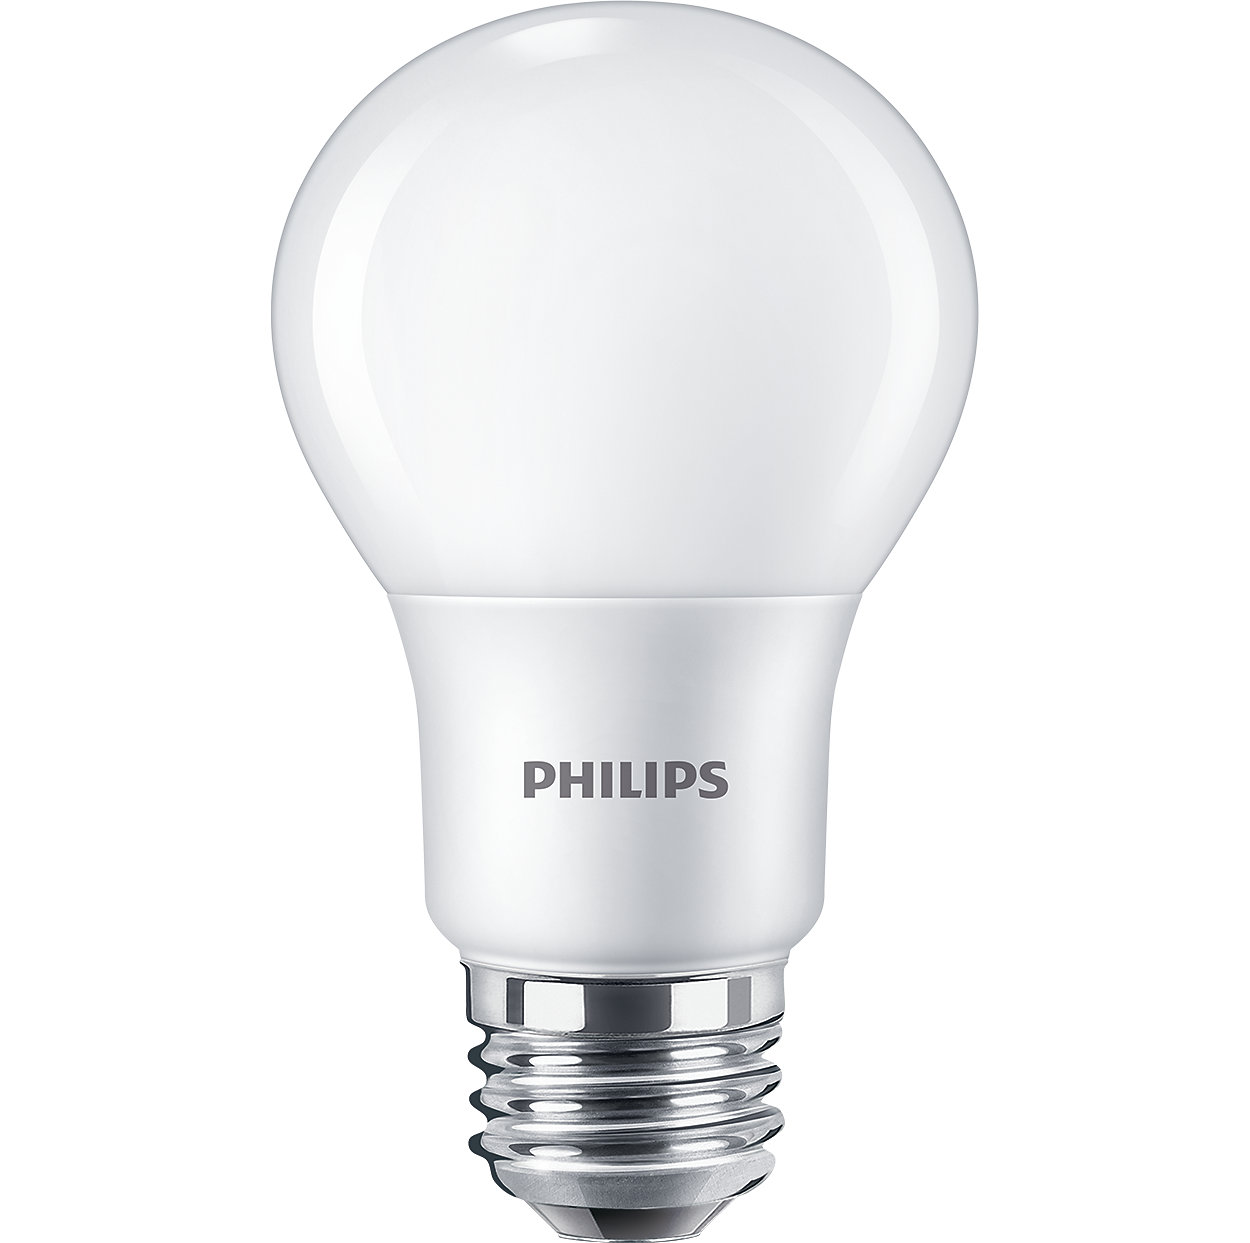 Attractive, dimmable, LED alternative to popular incandescent